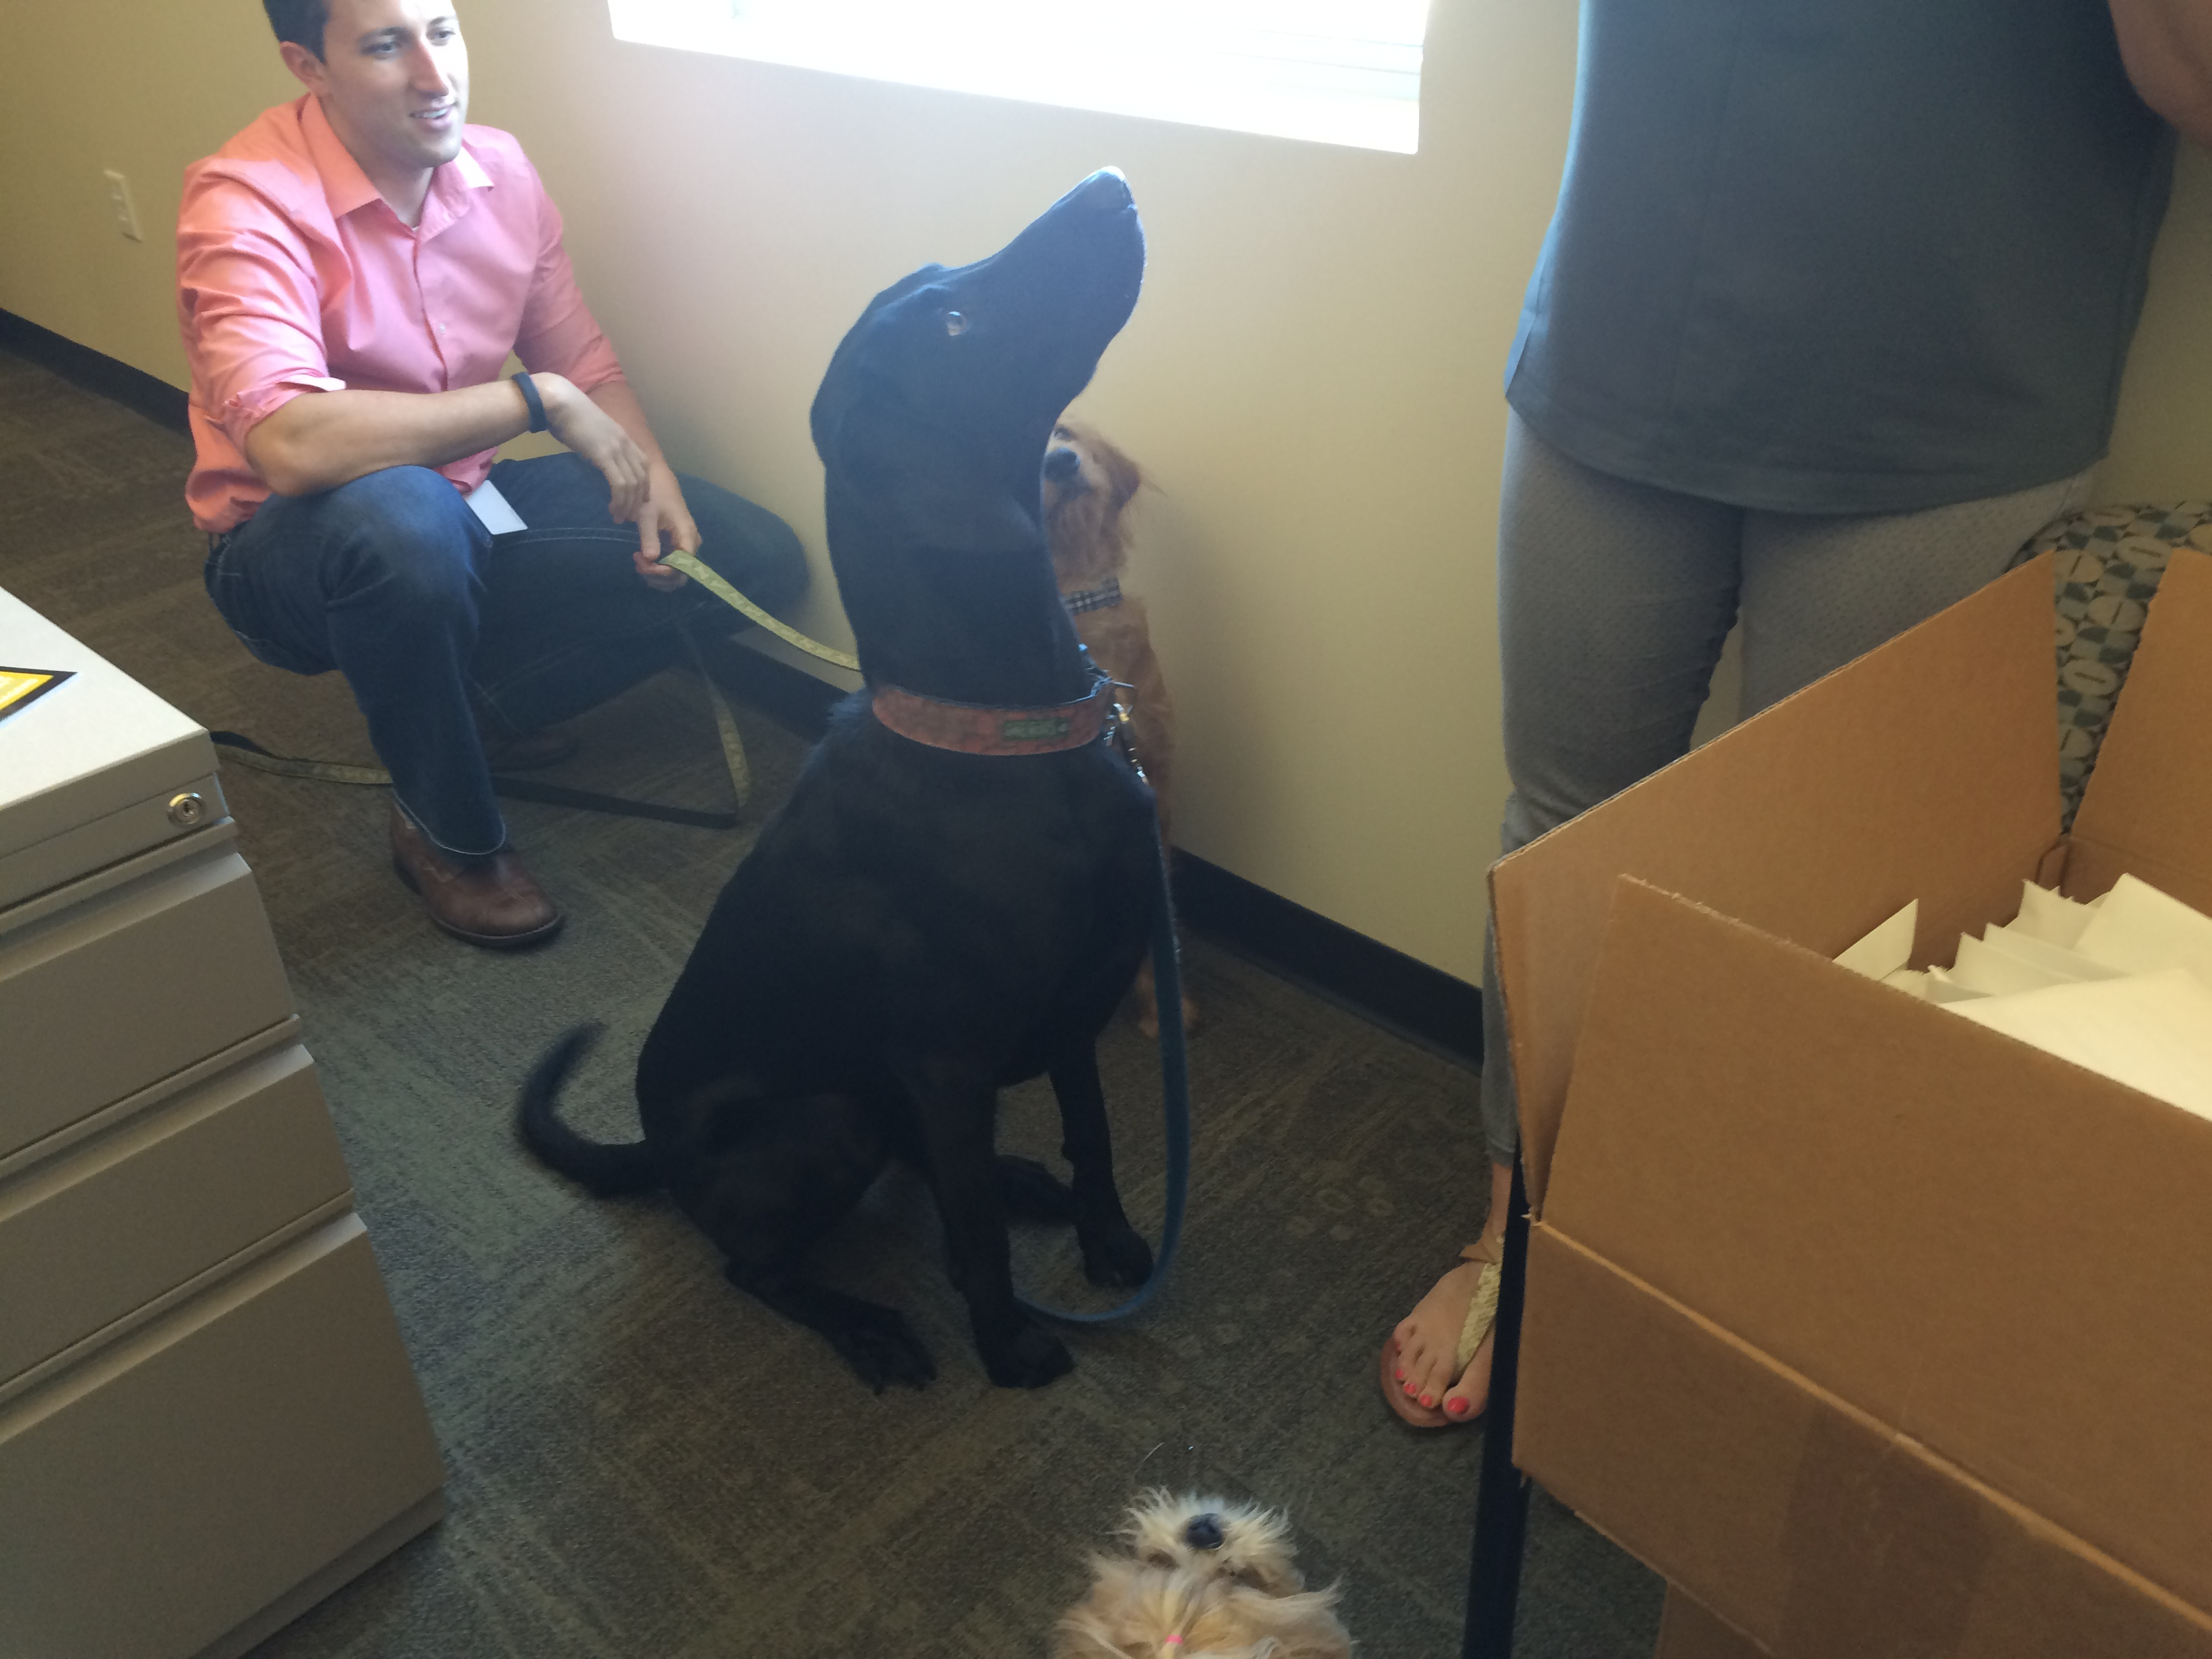 Bring your dog to work day! August 27, 2015450